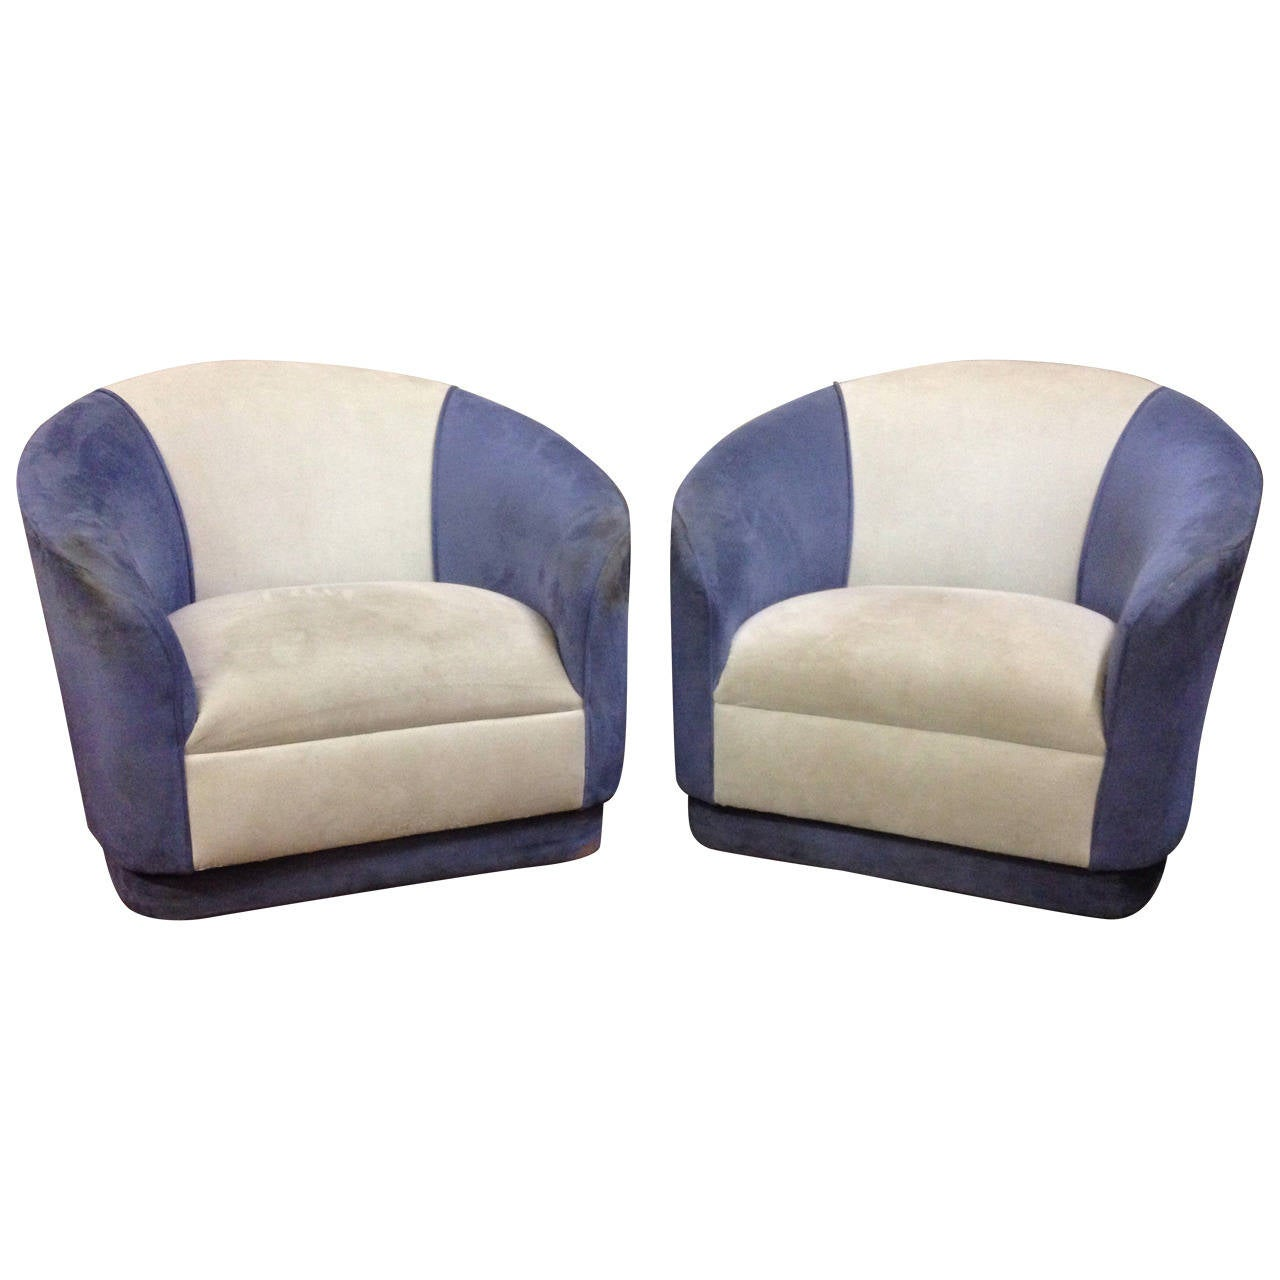 Barrel Chairs Pair Of Swivel Barrel Chairs For Sale At 1stdibs